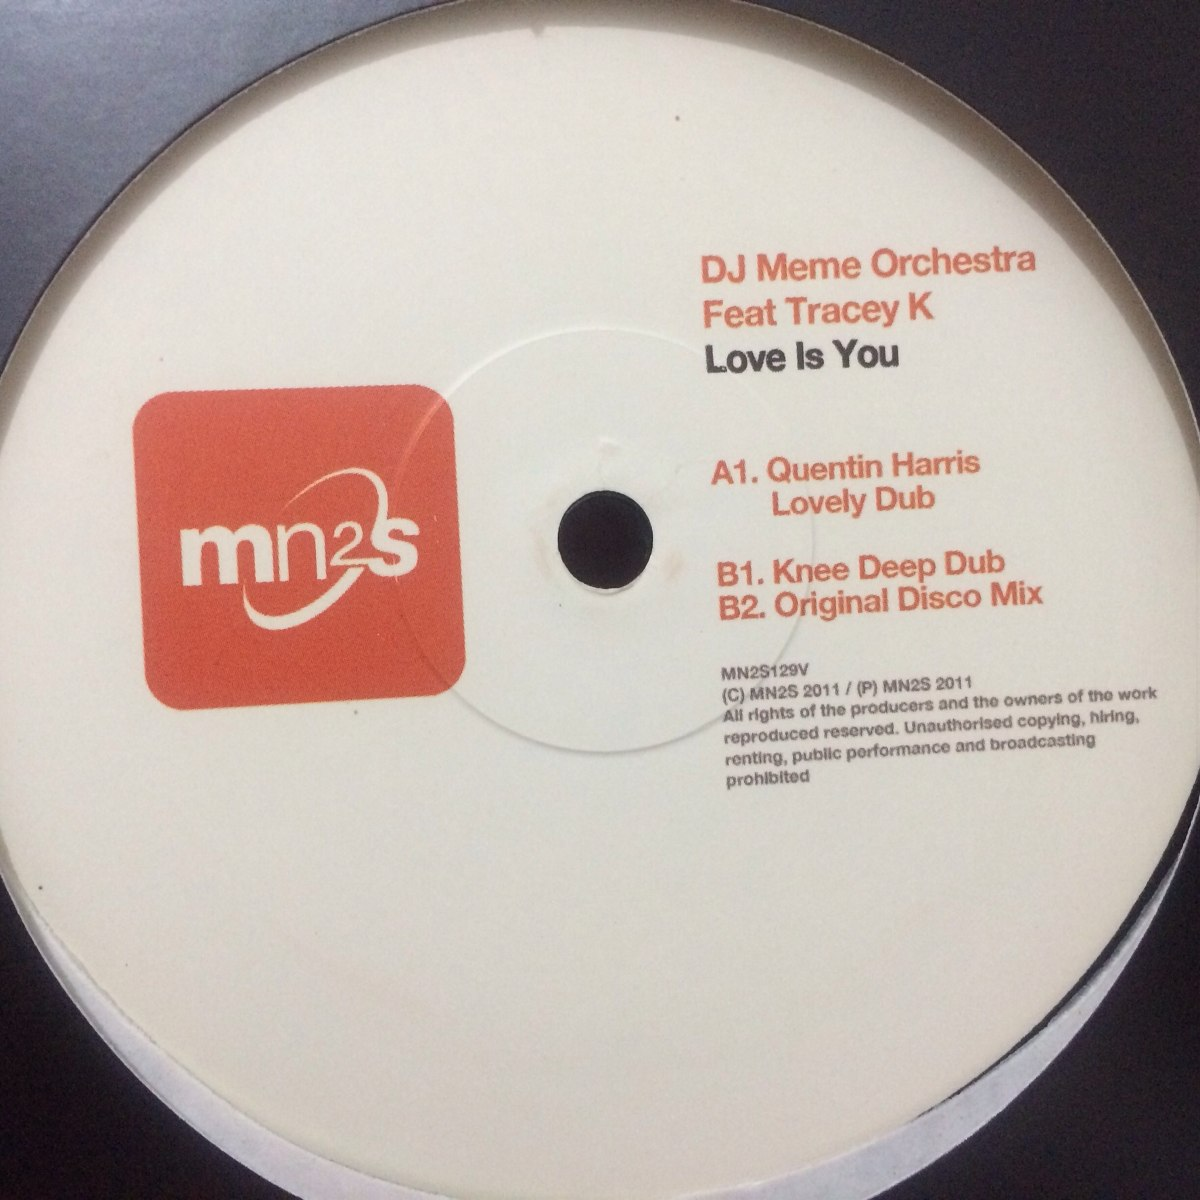 dj meme orchestra feat tracey k love is you D_NQ_NP_842601 MLB20355741048_072015 F dj meme orchestra feat tracey k love is you r$ 300,00 em mercado